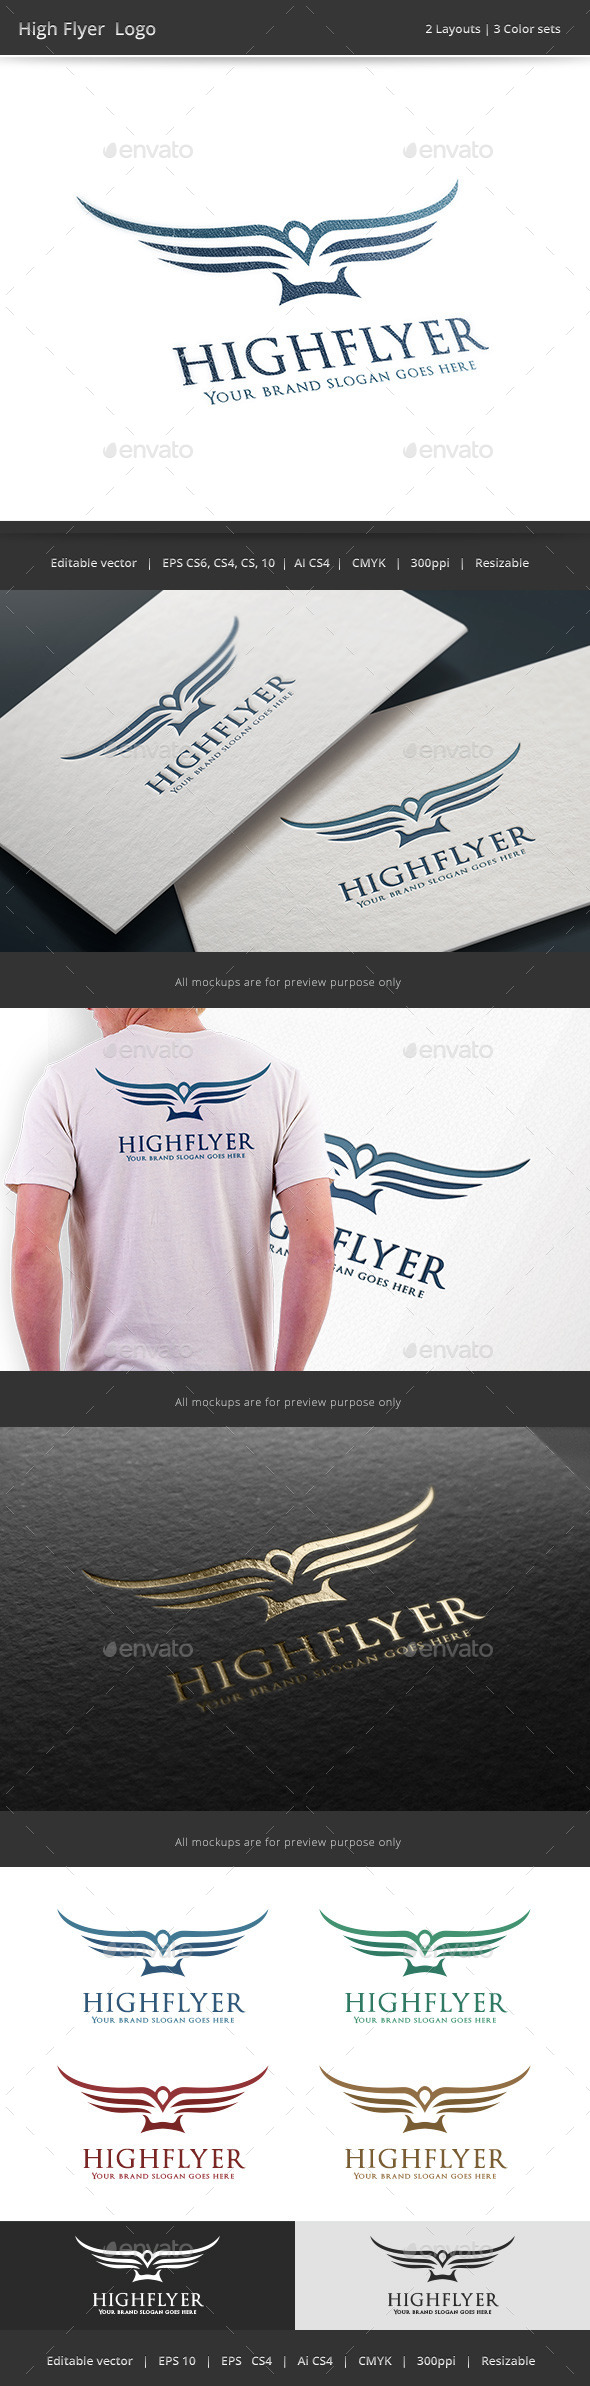 High Flyer Bird Logo - Vector Abstract